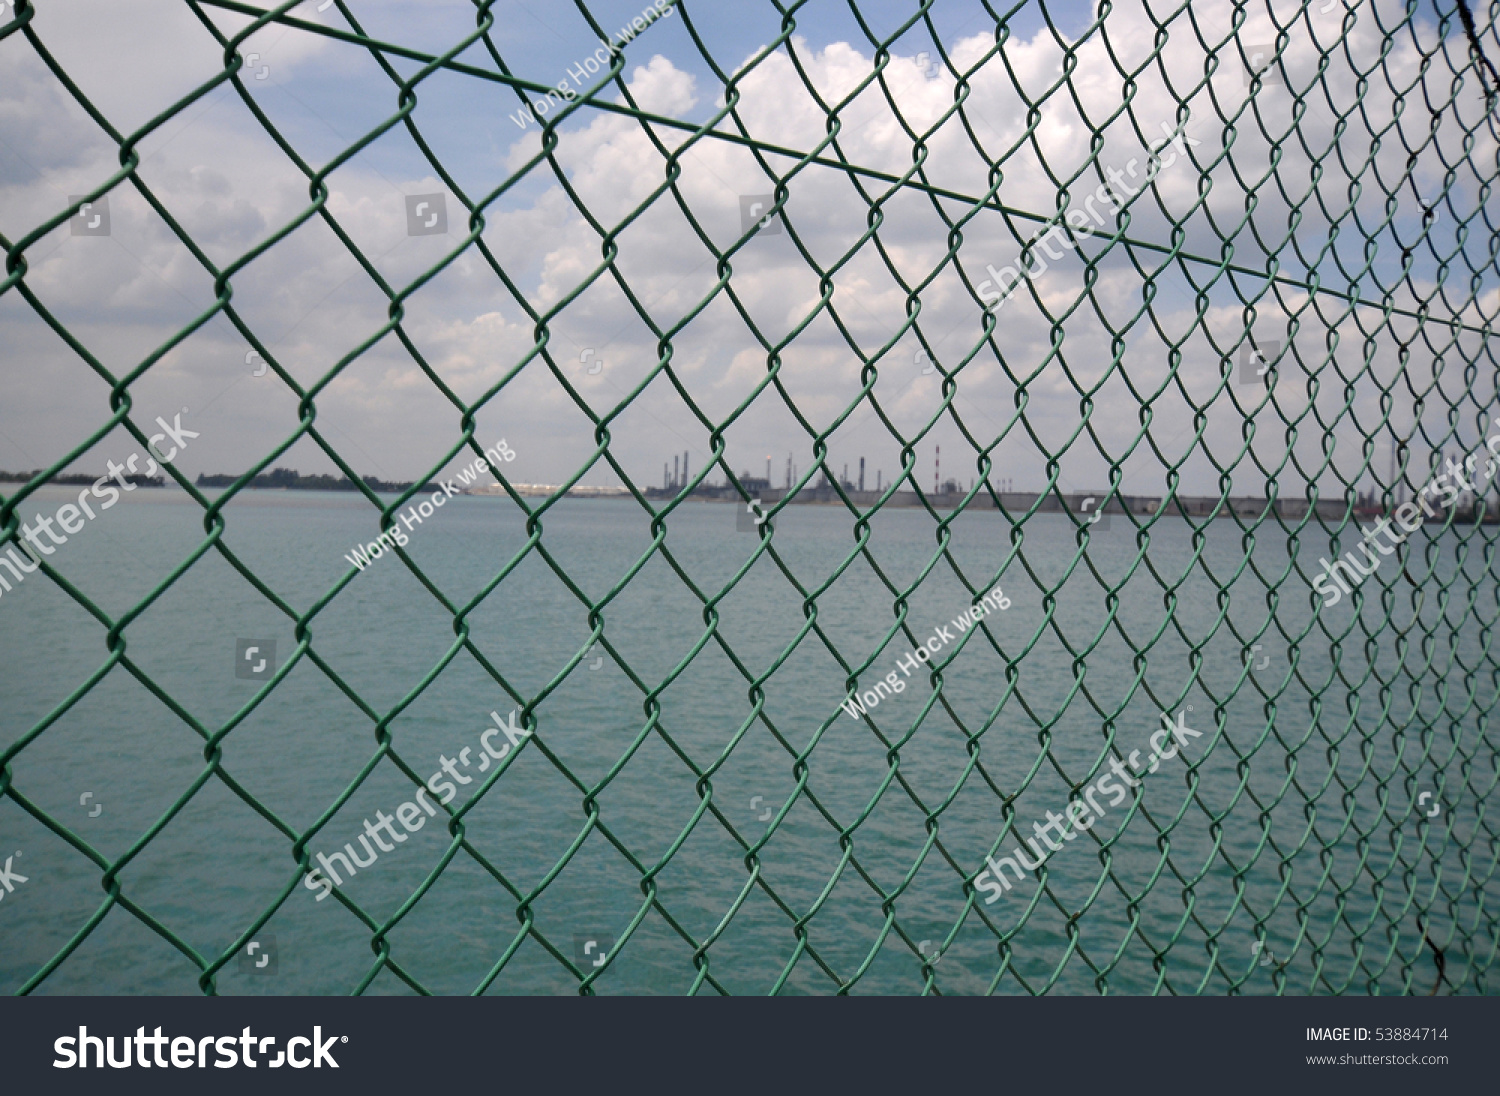 Wire Mesh Fencing Stock Photo (Royalty Free) 53884714 - Shutterstock